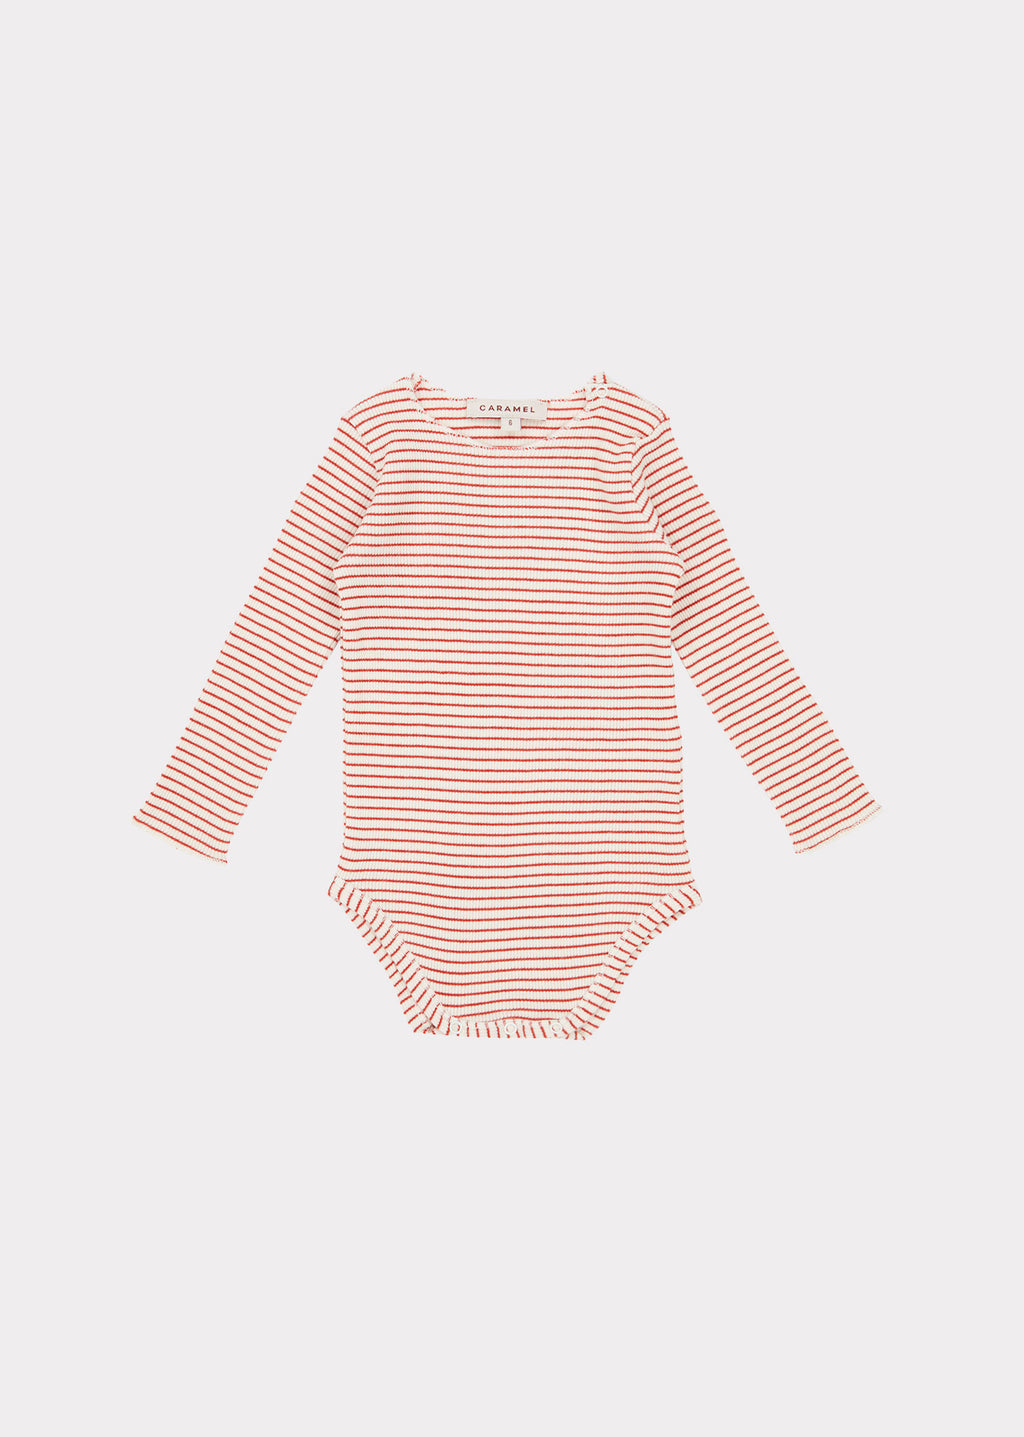 Holland Park Romper - Ecru Stripe